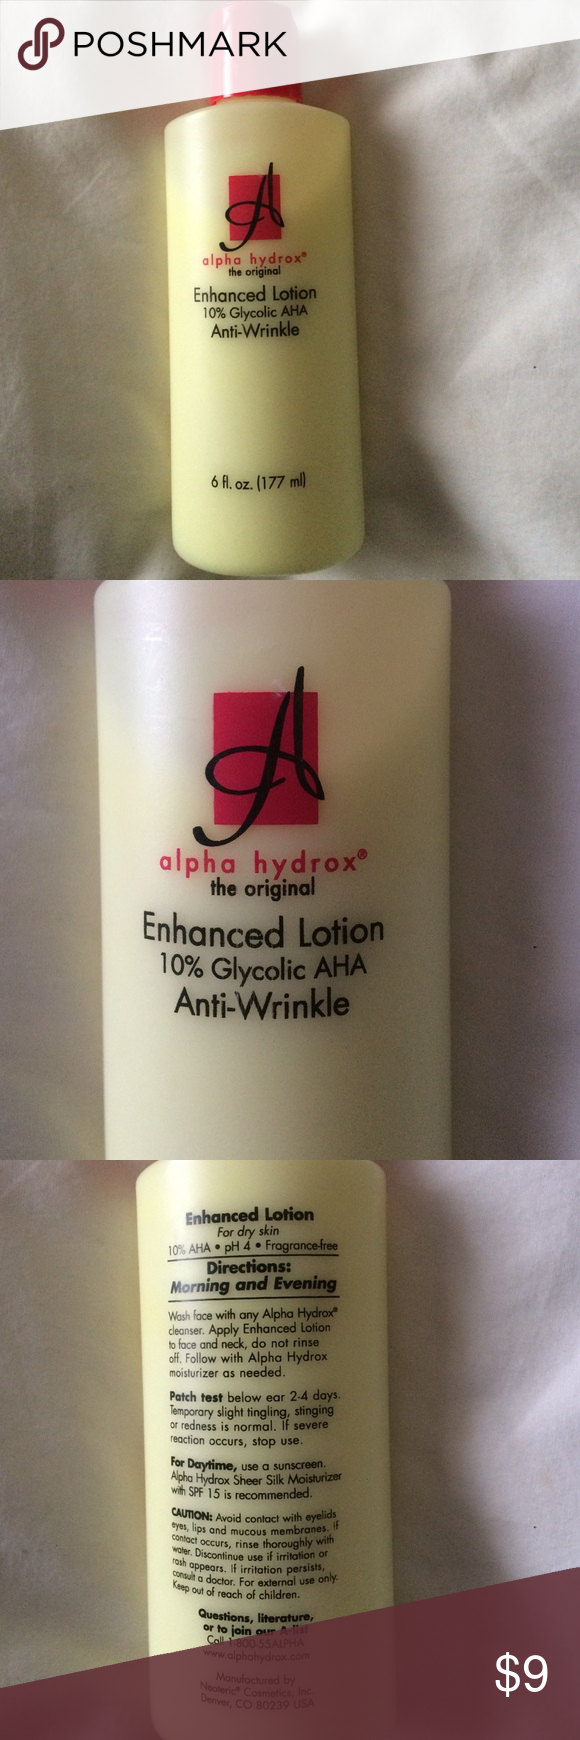 Alpha Hydrox Enhanced Lotion 10 Glycolic Aha Anti Wrinkle Lotion Lotion Forehead Wrinkles